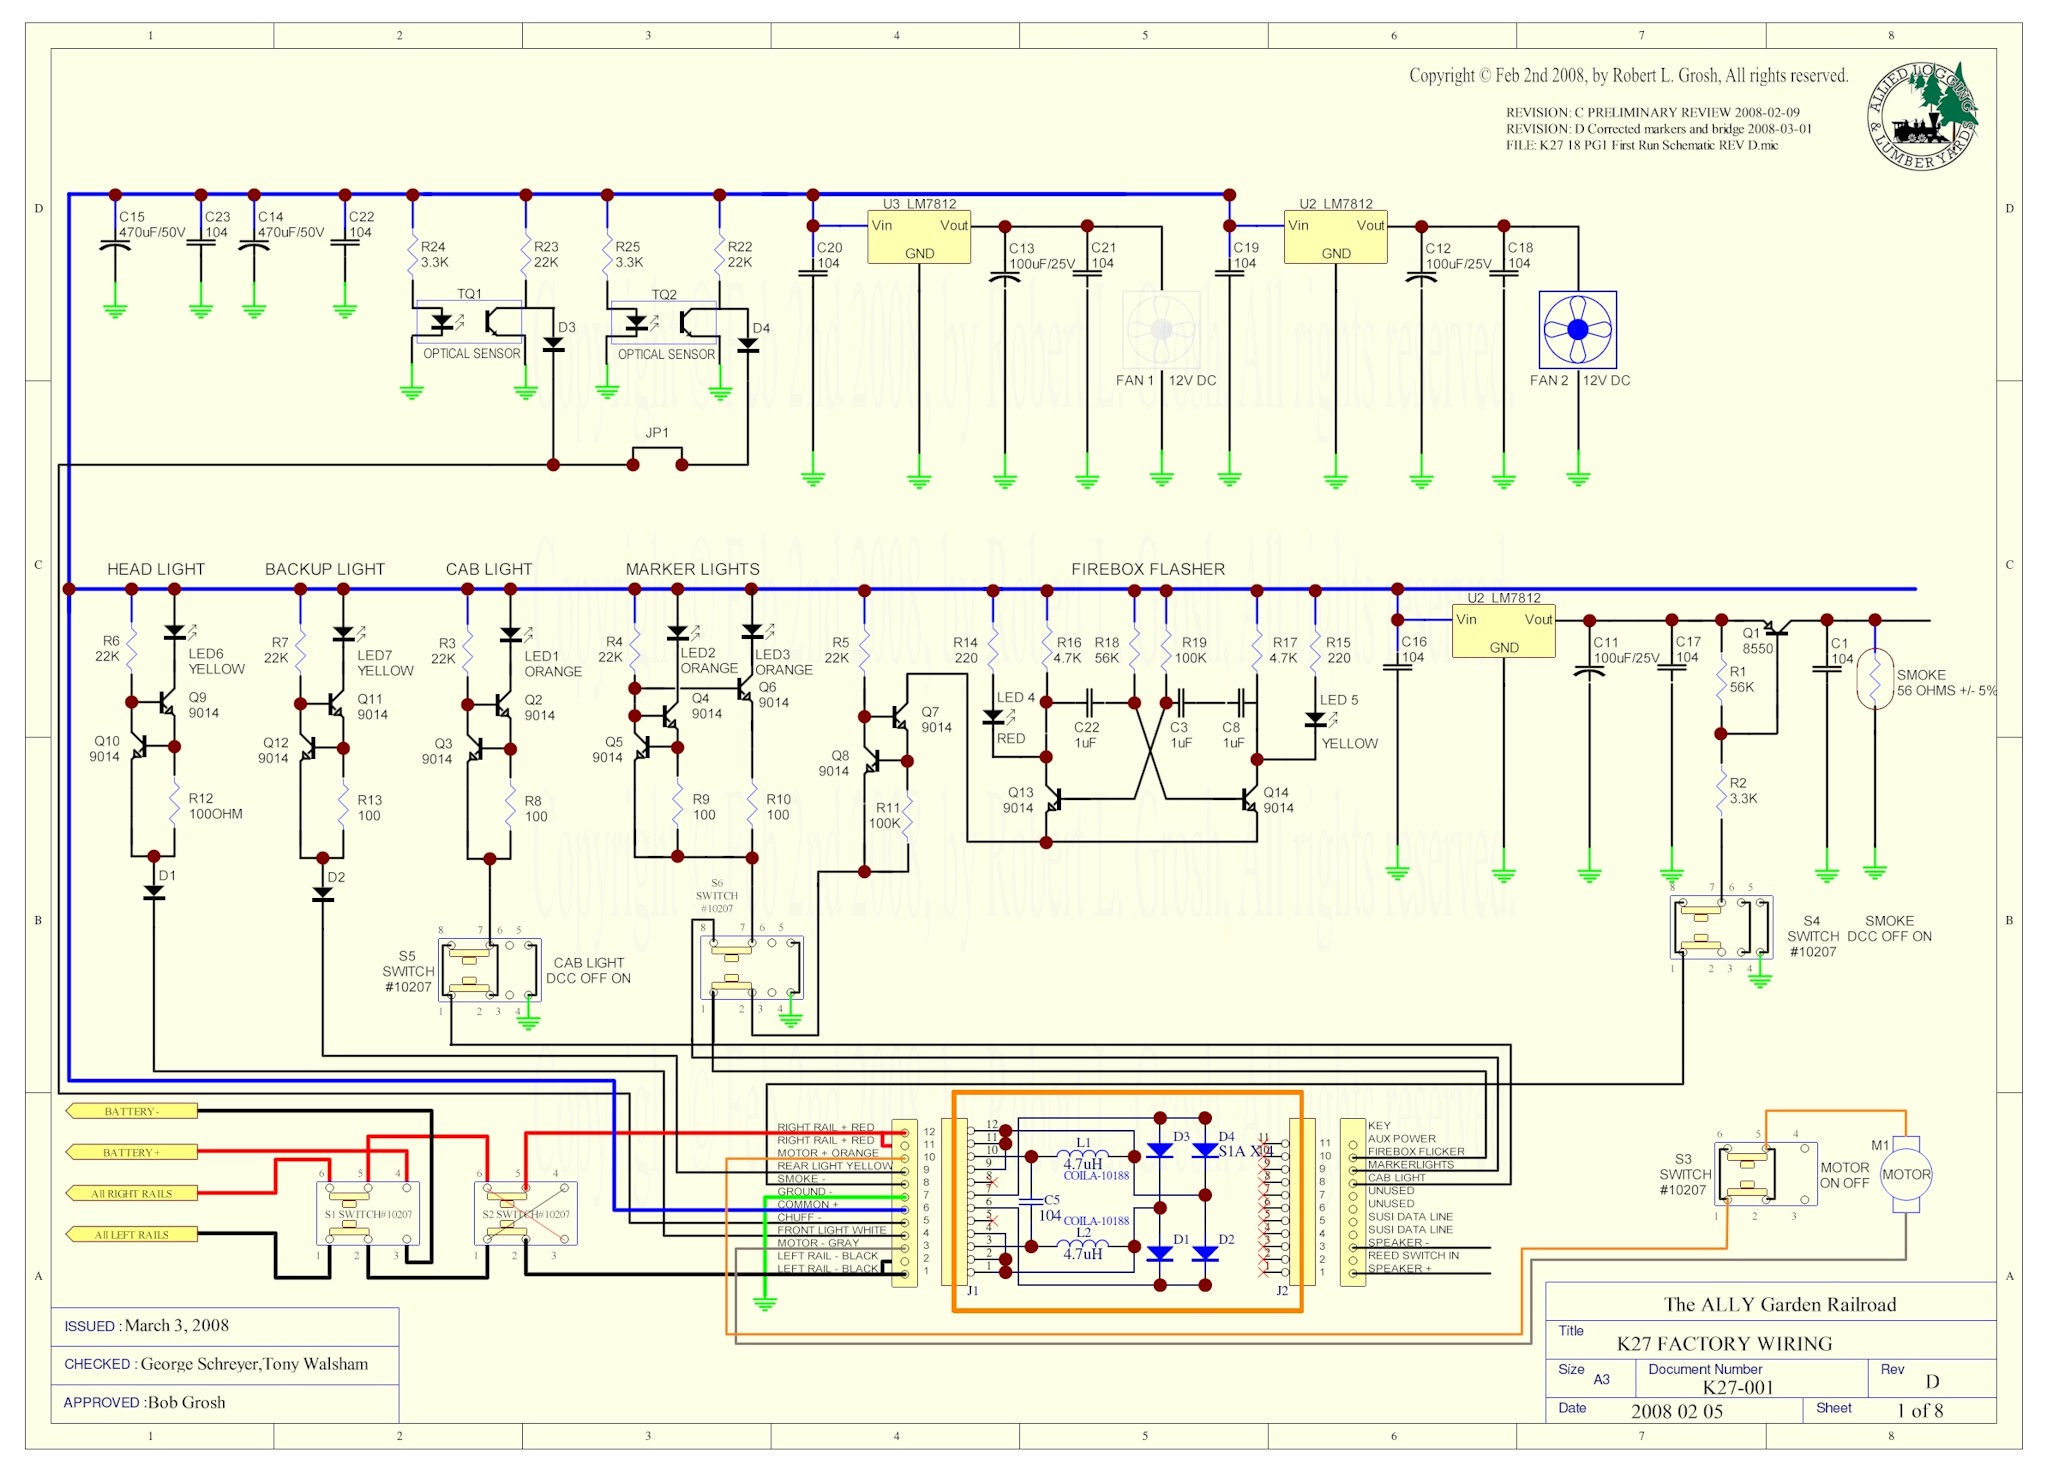 Bachmann Wiring Diagrams - 17.1.manualuniverse.co • on nce wiring diagram, bell wiring diagram, dremel wiring diagram, proto 2000 wiring diagram, lgb wiring diagram, becker wiring diagram, bosch wiring diagram, ihc wiring diagram, harris wiring diagram, american flyer wiring diagram, johnson wiring diagram, braun wiring diagram, atlas wiring diagram, razor wiring diagram, meyer wiring diagram, digitrax wiring diagram, apc wiring diagram, lionel wiring diagram, emerson wiring diagram, evergreen wiring diagram,